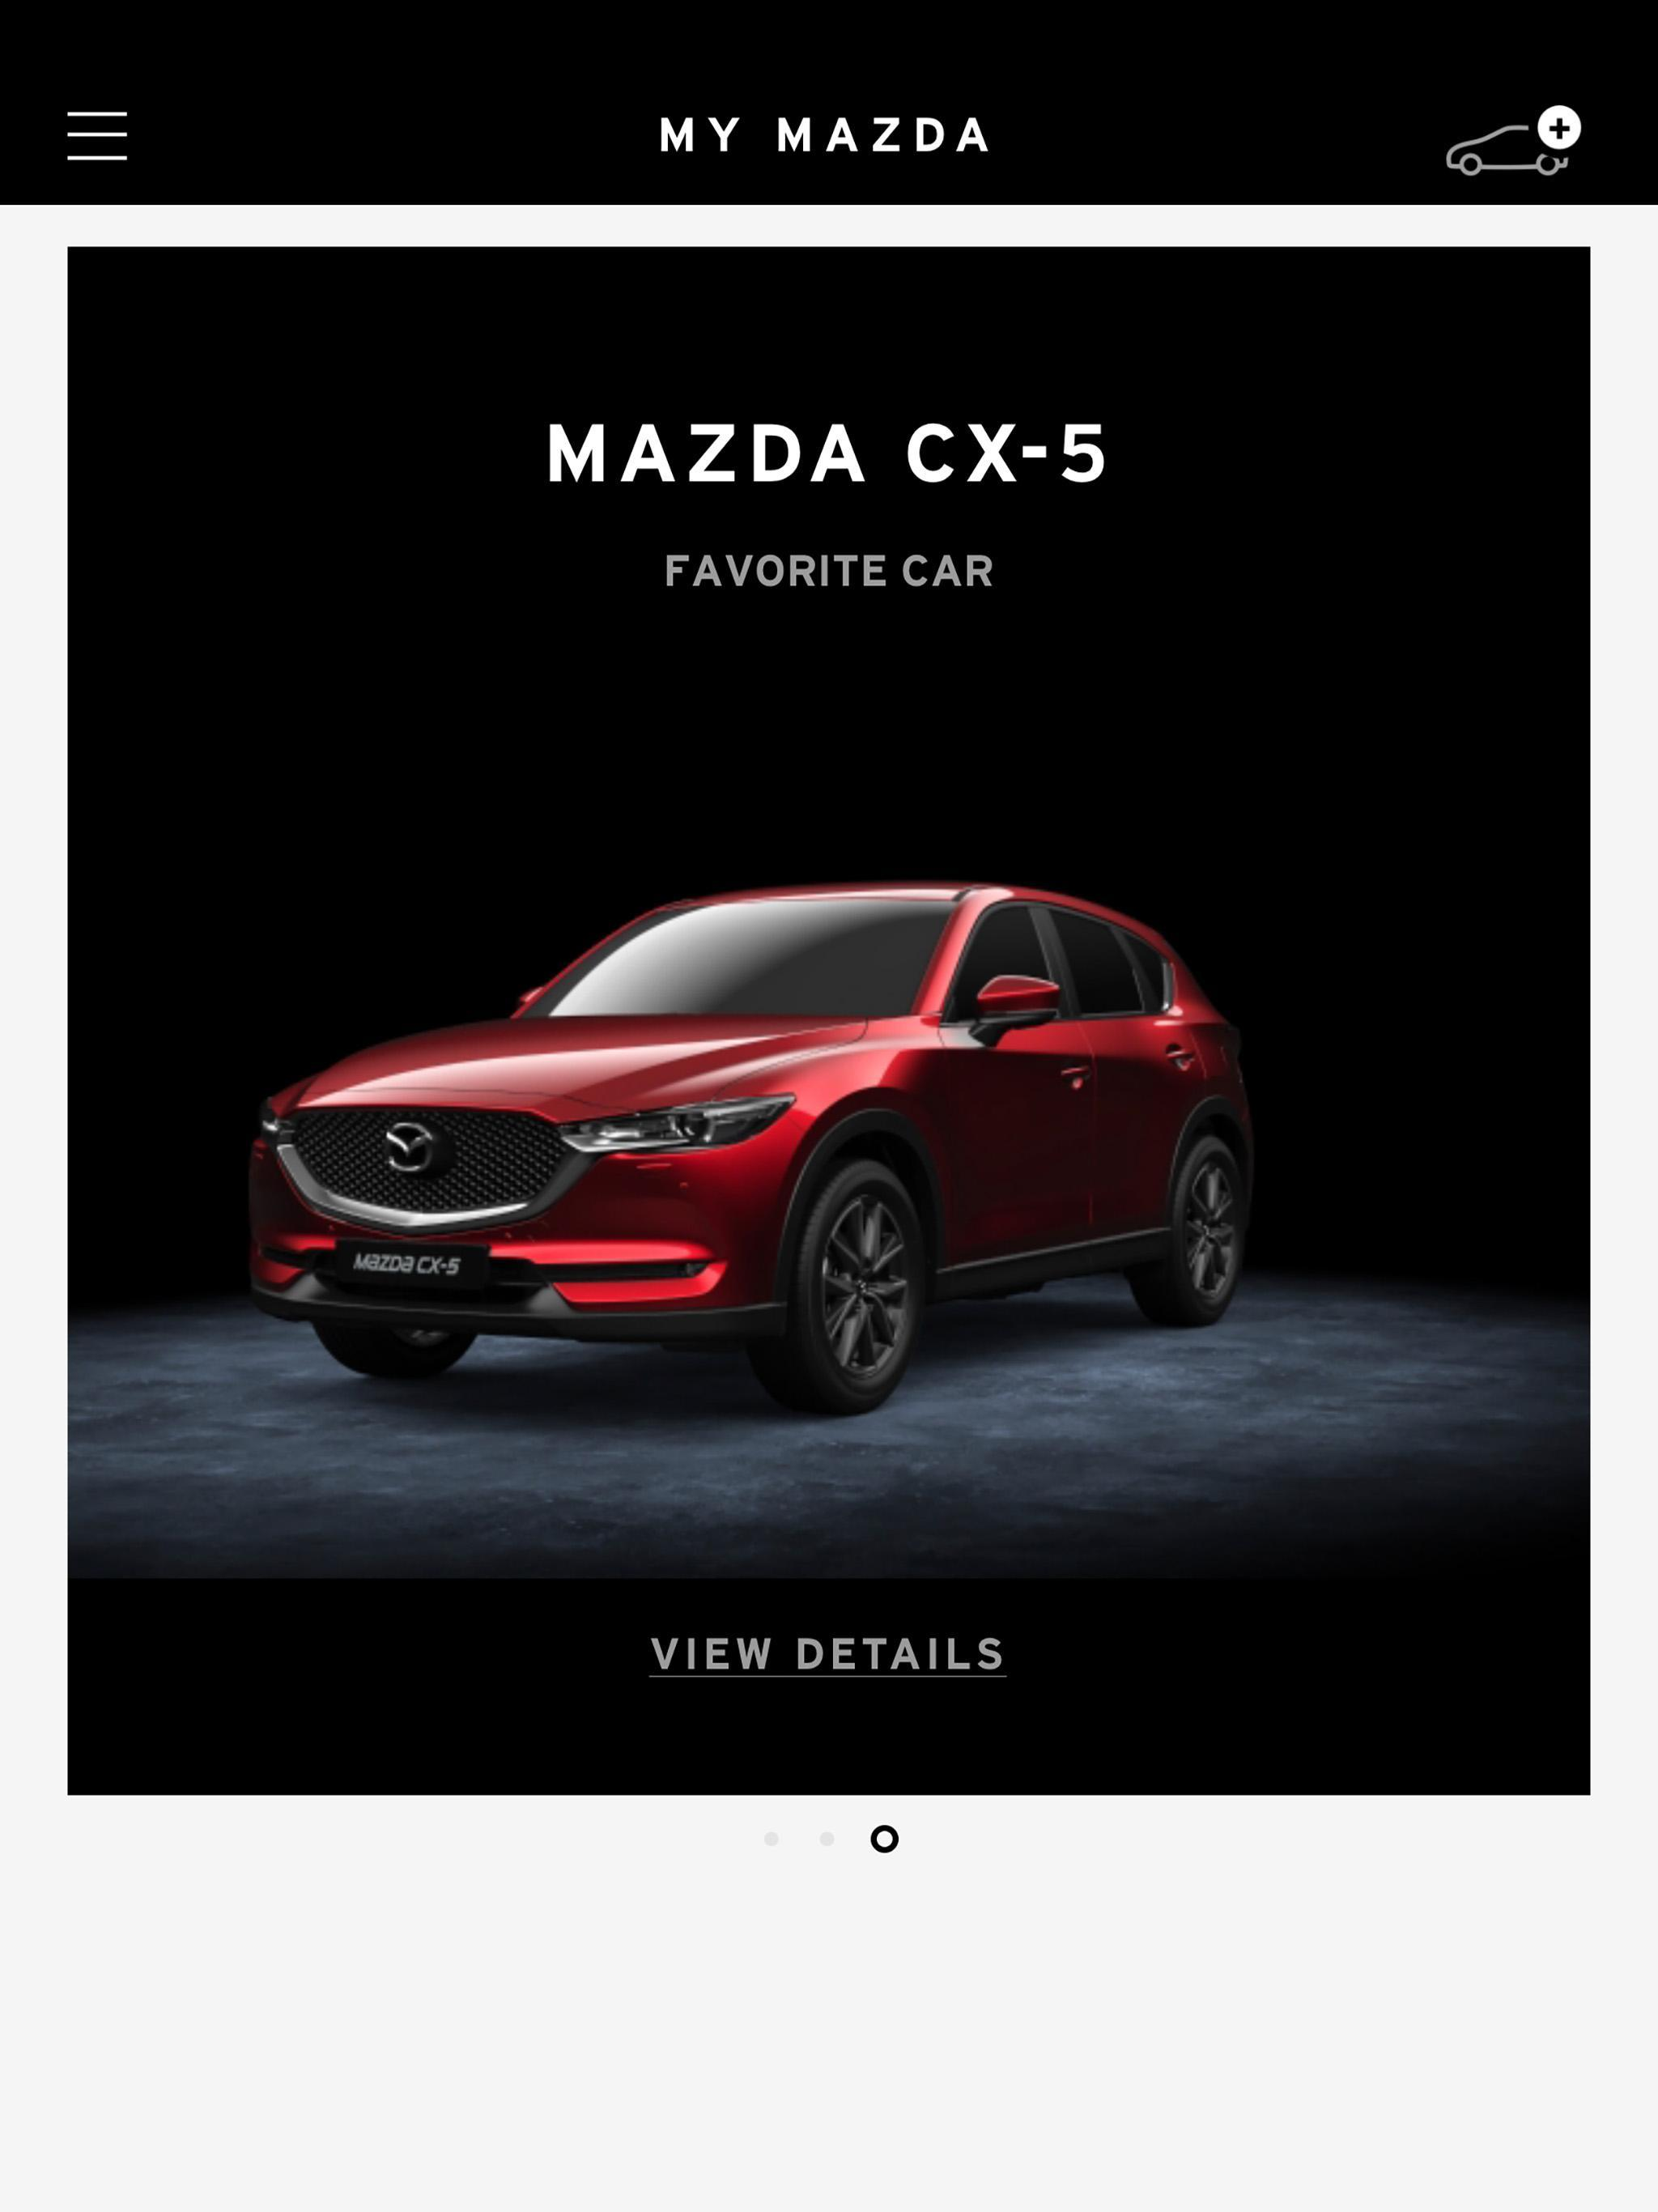 My Mazda for Android - APK Download